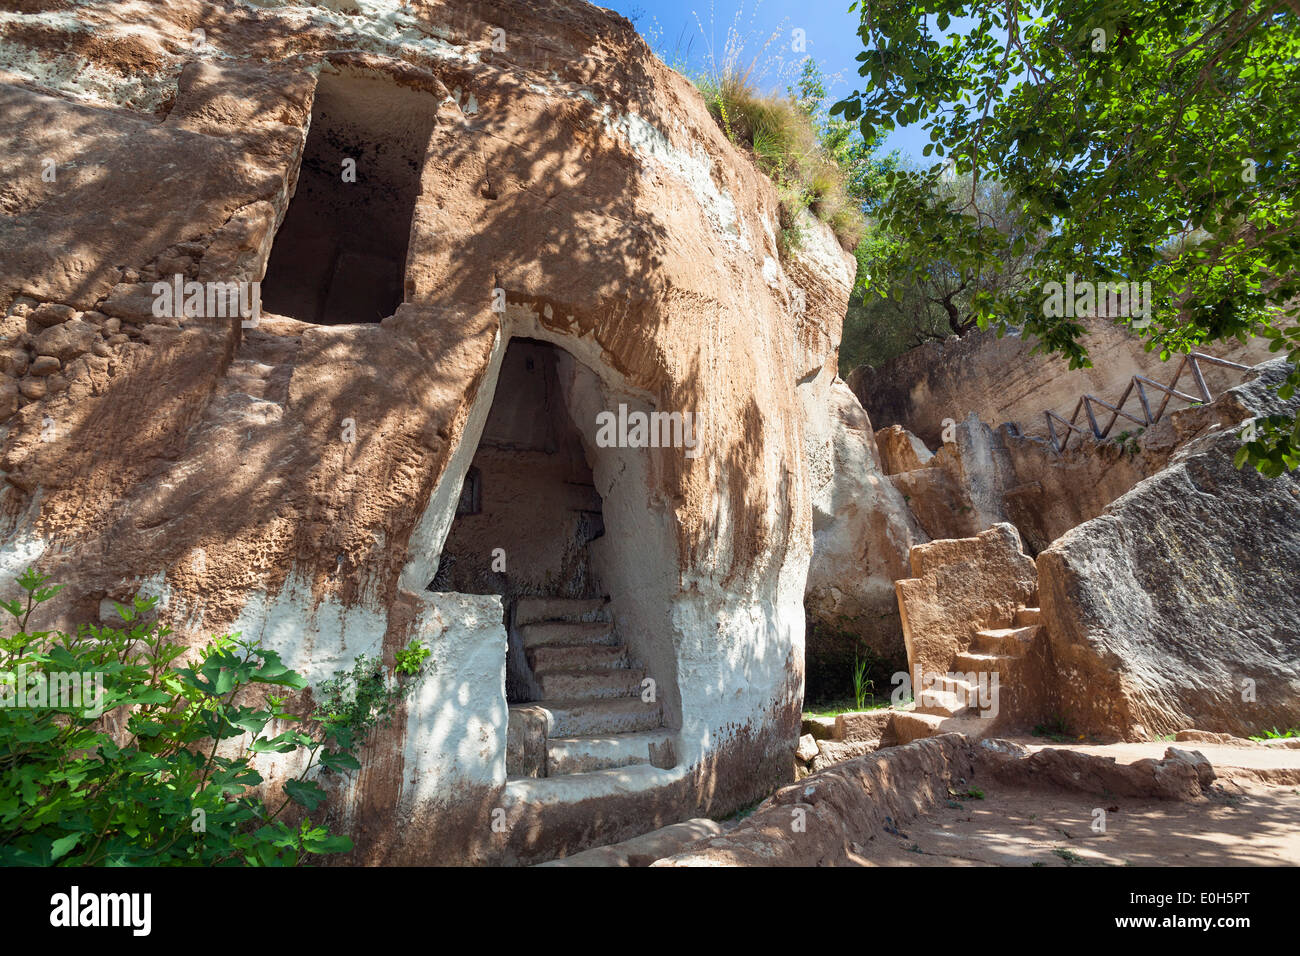 Cave dwellings in the Rocky Village of Zungri, Calabria, Italy, Europe - Stock Image